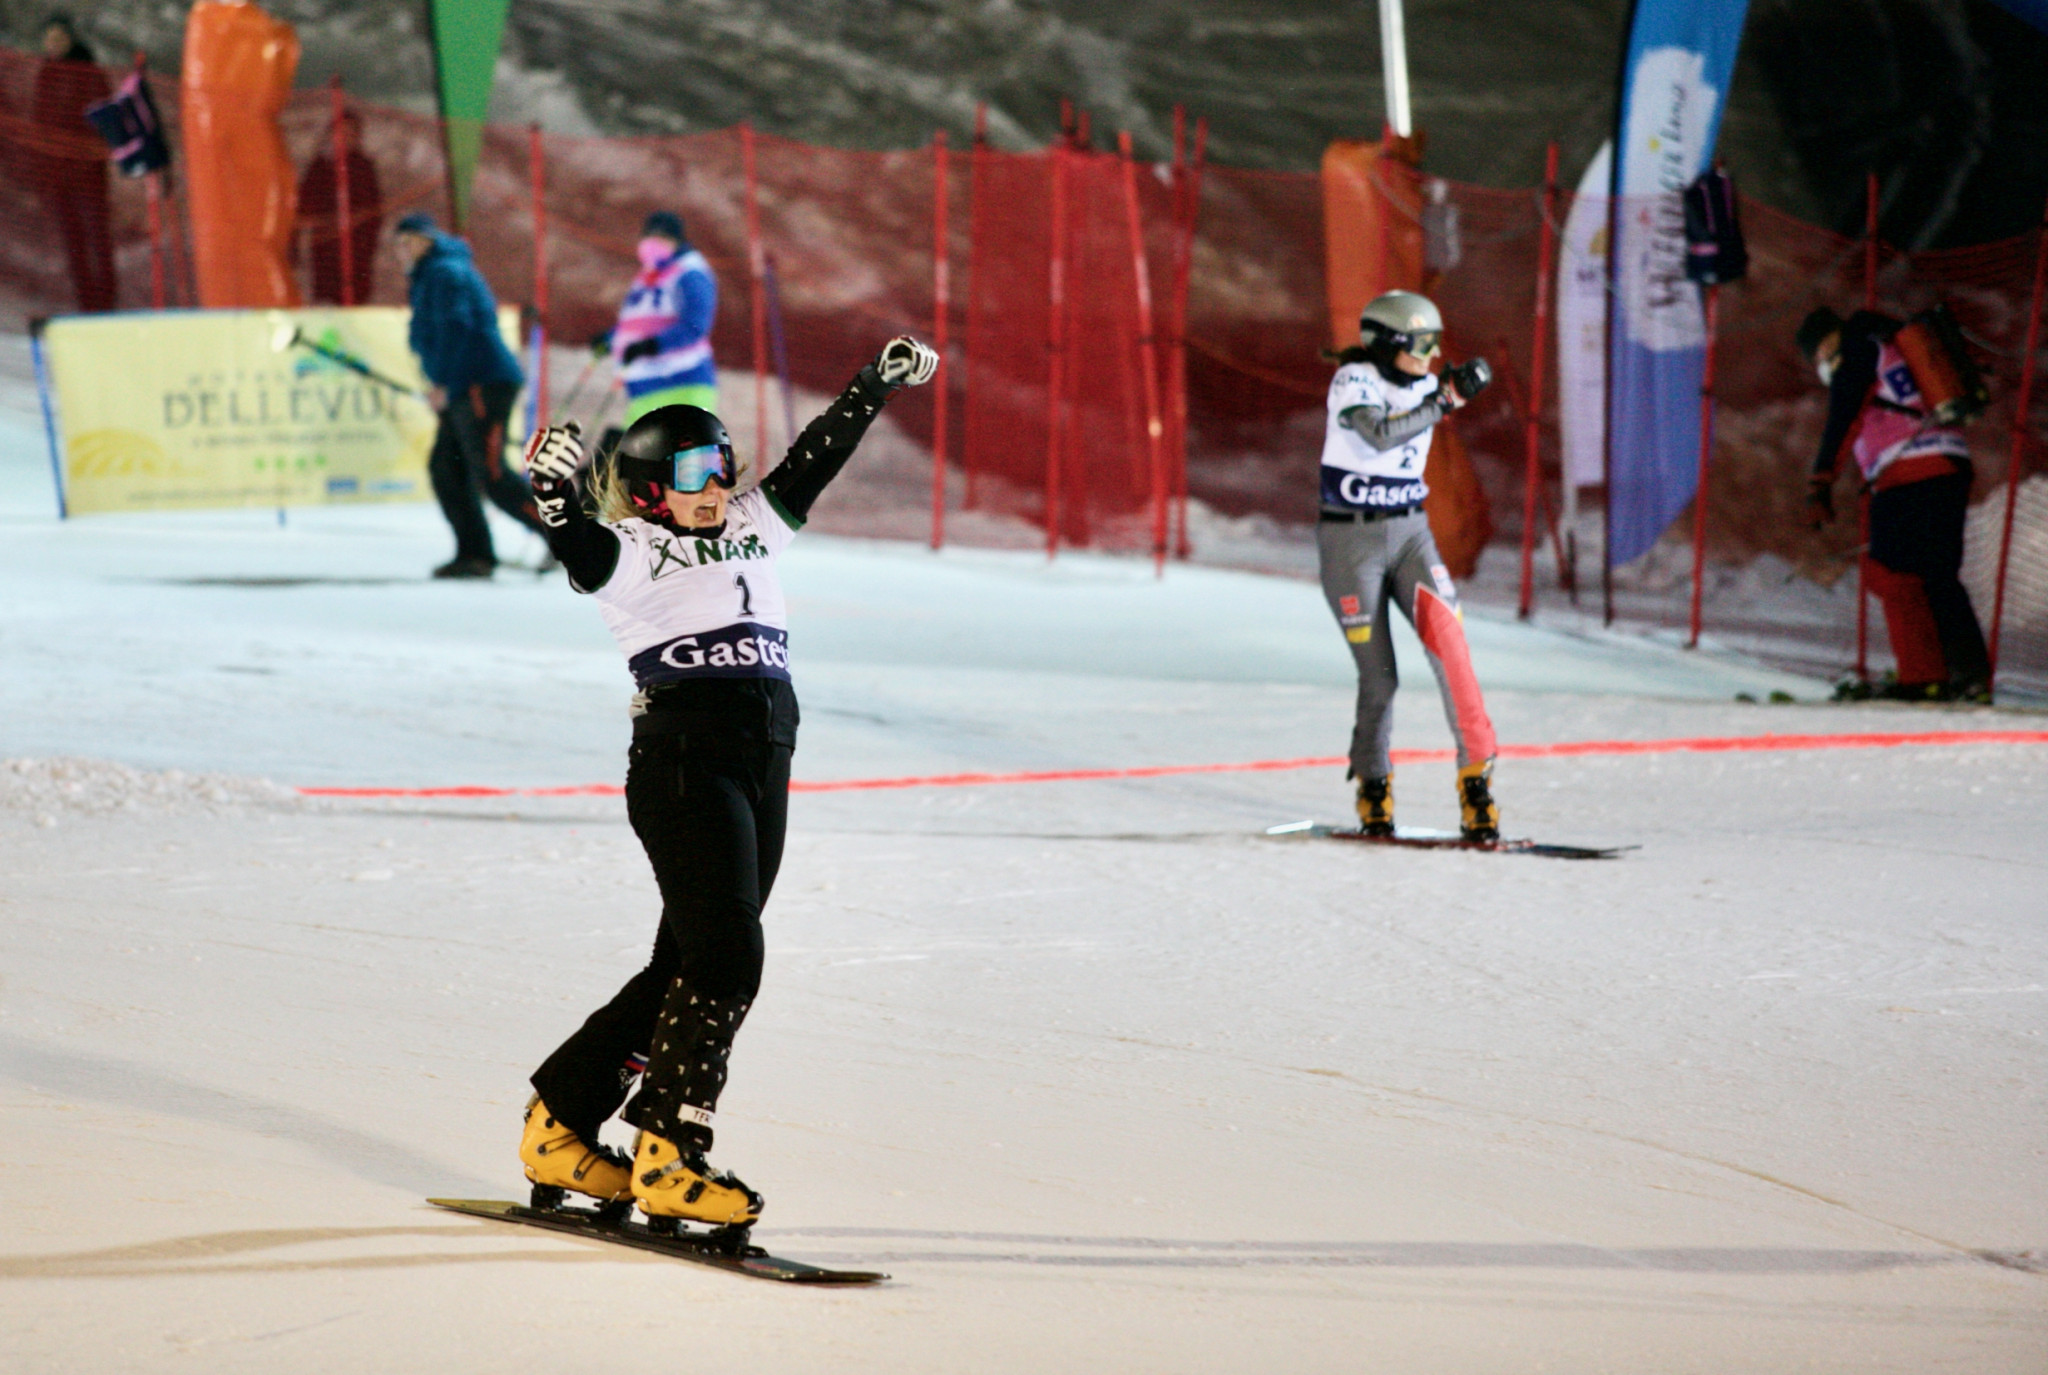 Nadyrshina seeking Snowboard World Cup hat-trick on home snow in Moscow